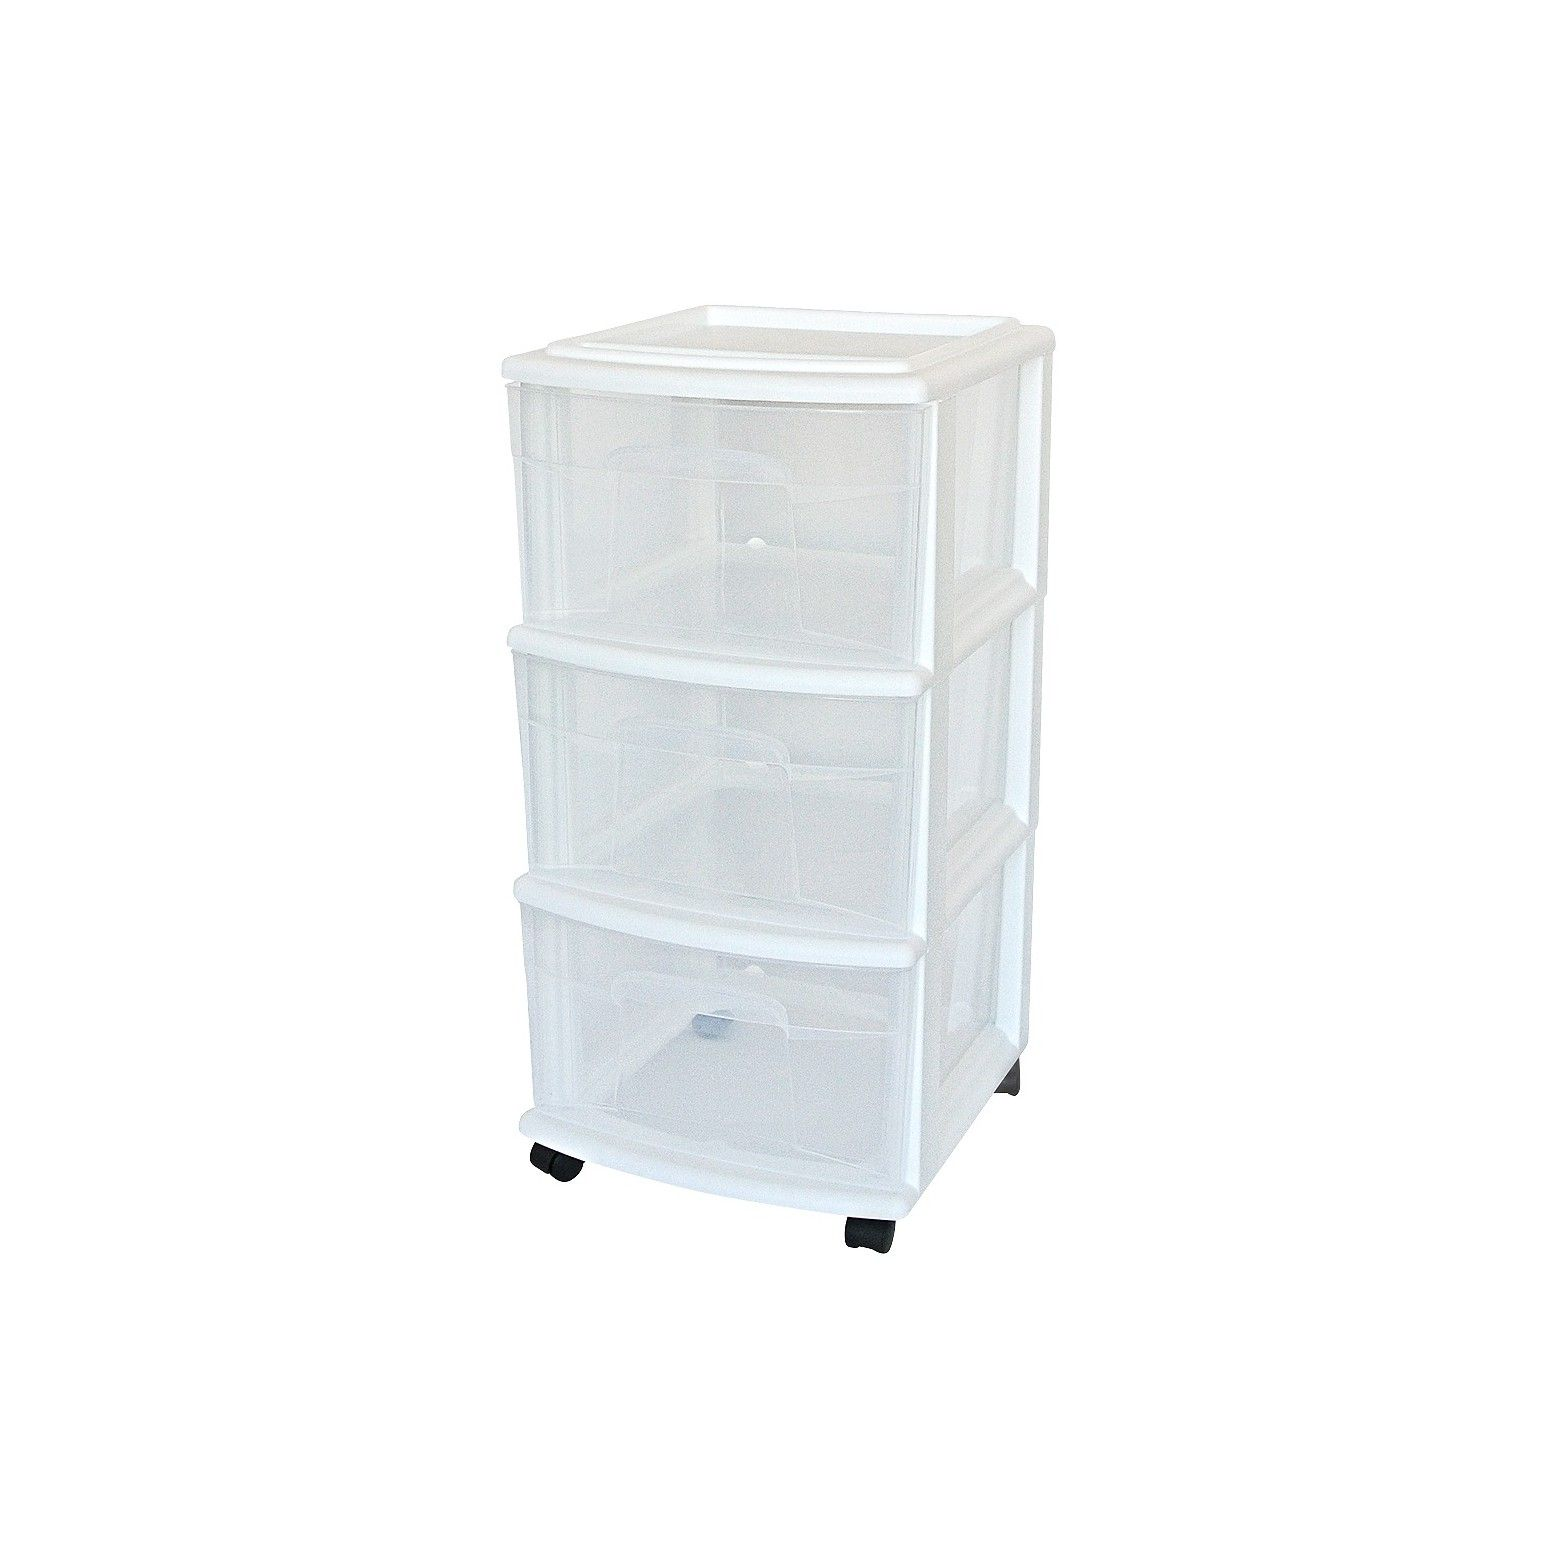 clear wth gret somee t plastic dresser de storage thers pnterest drawers wide